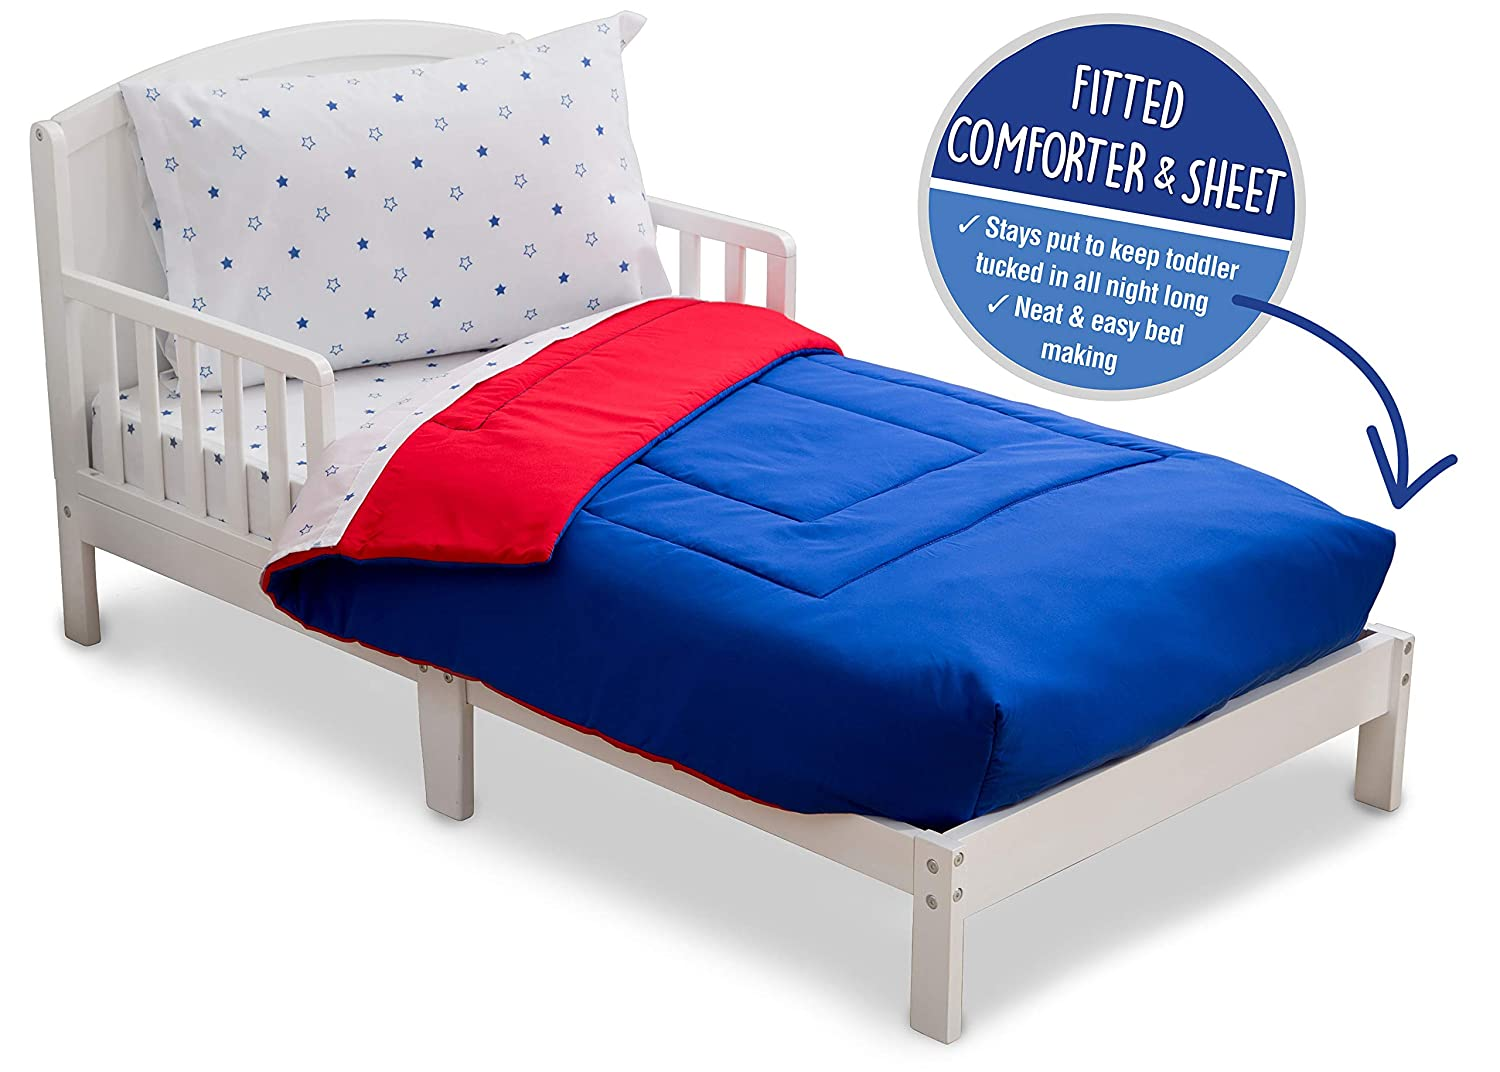 Toddler Bedding Set   Boys 4 Piece Collection   Fitted Sheet, Flat Top Sheet w/ Elastic bottom, Fitted Comforter w/ Elastic bottom, Pillowcase   Delta Children   Boys American   Red White Blue